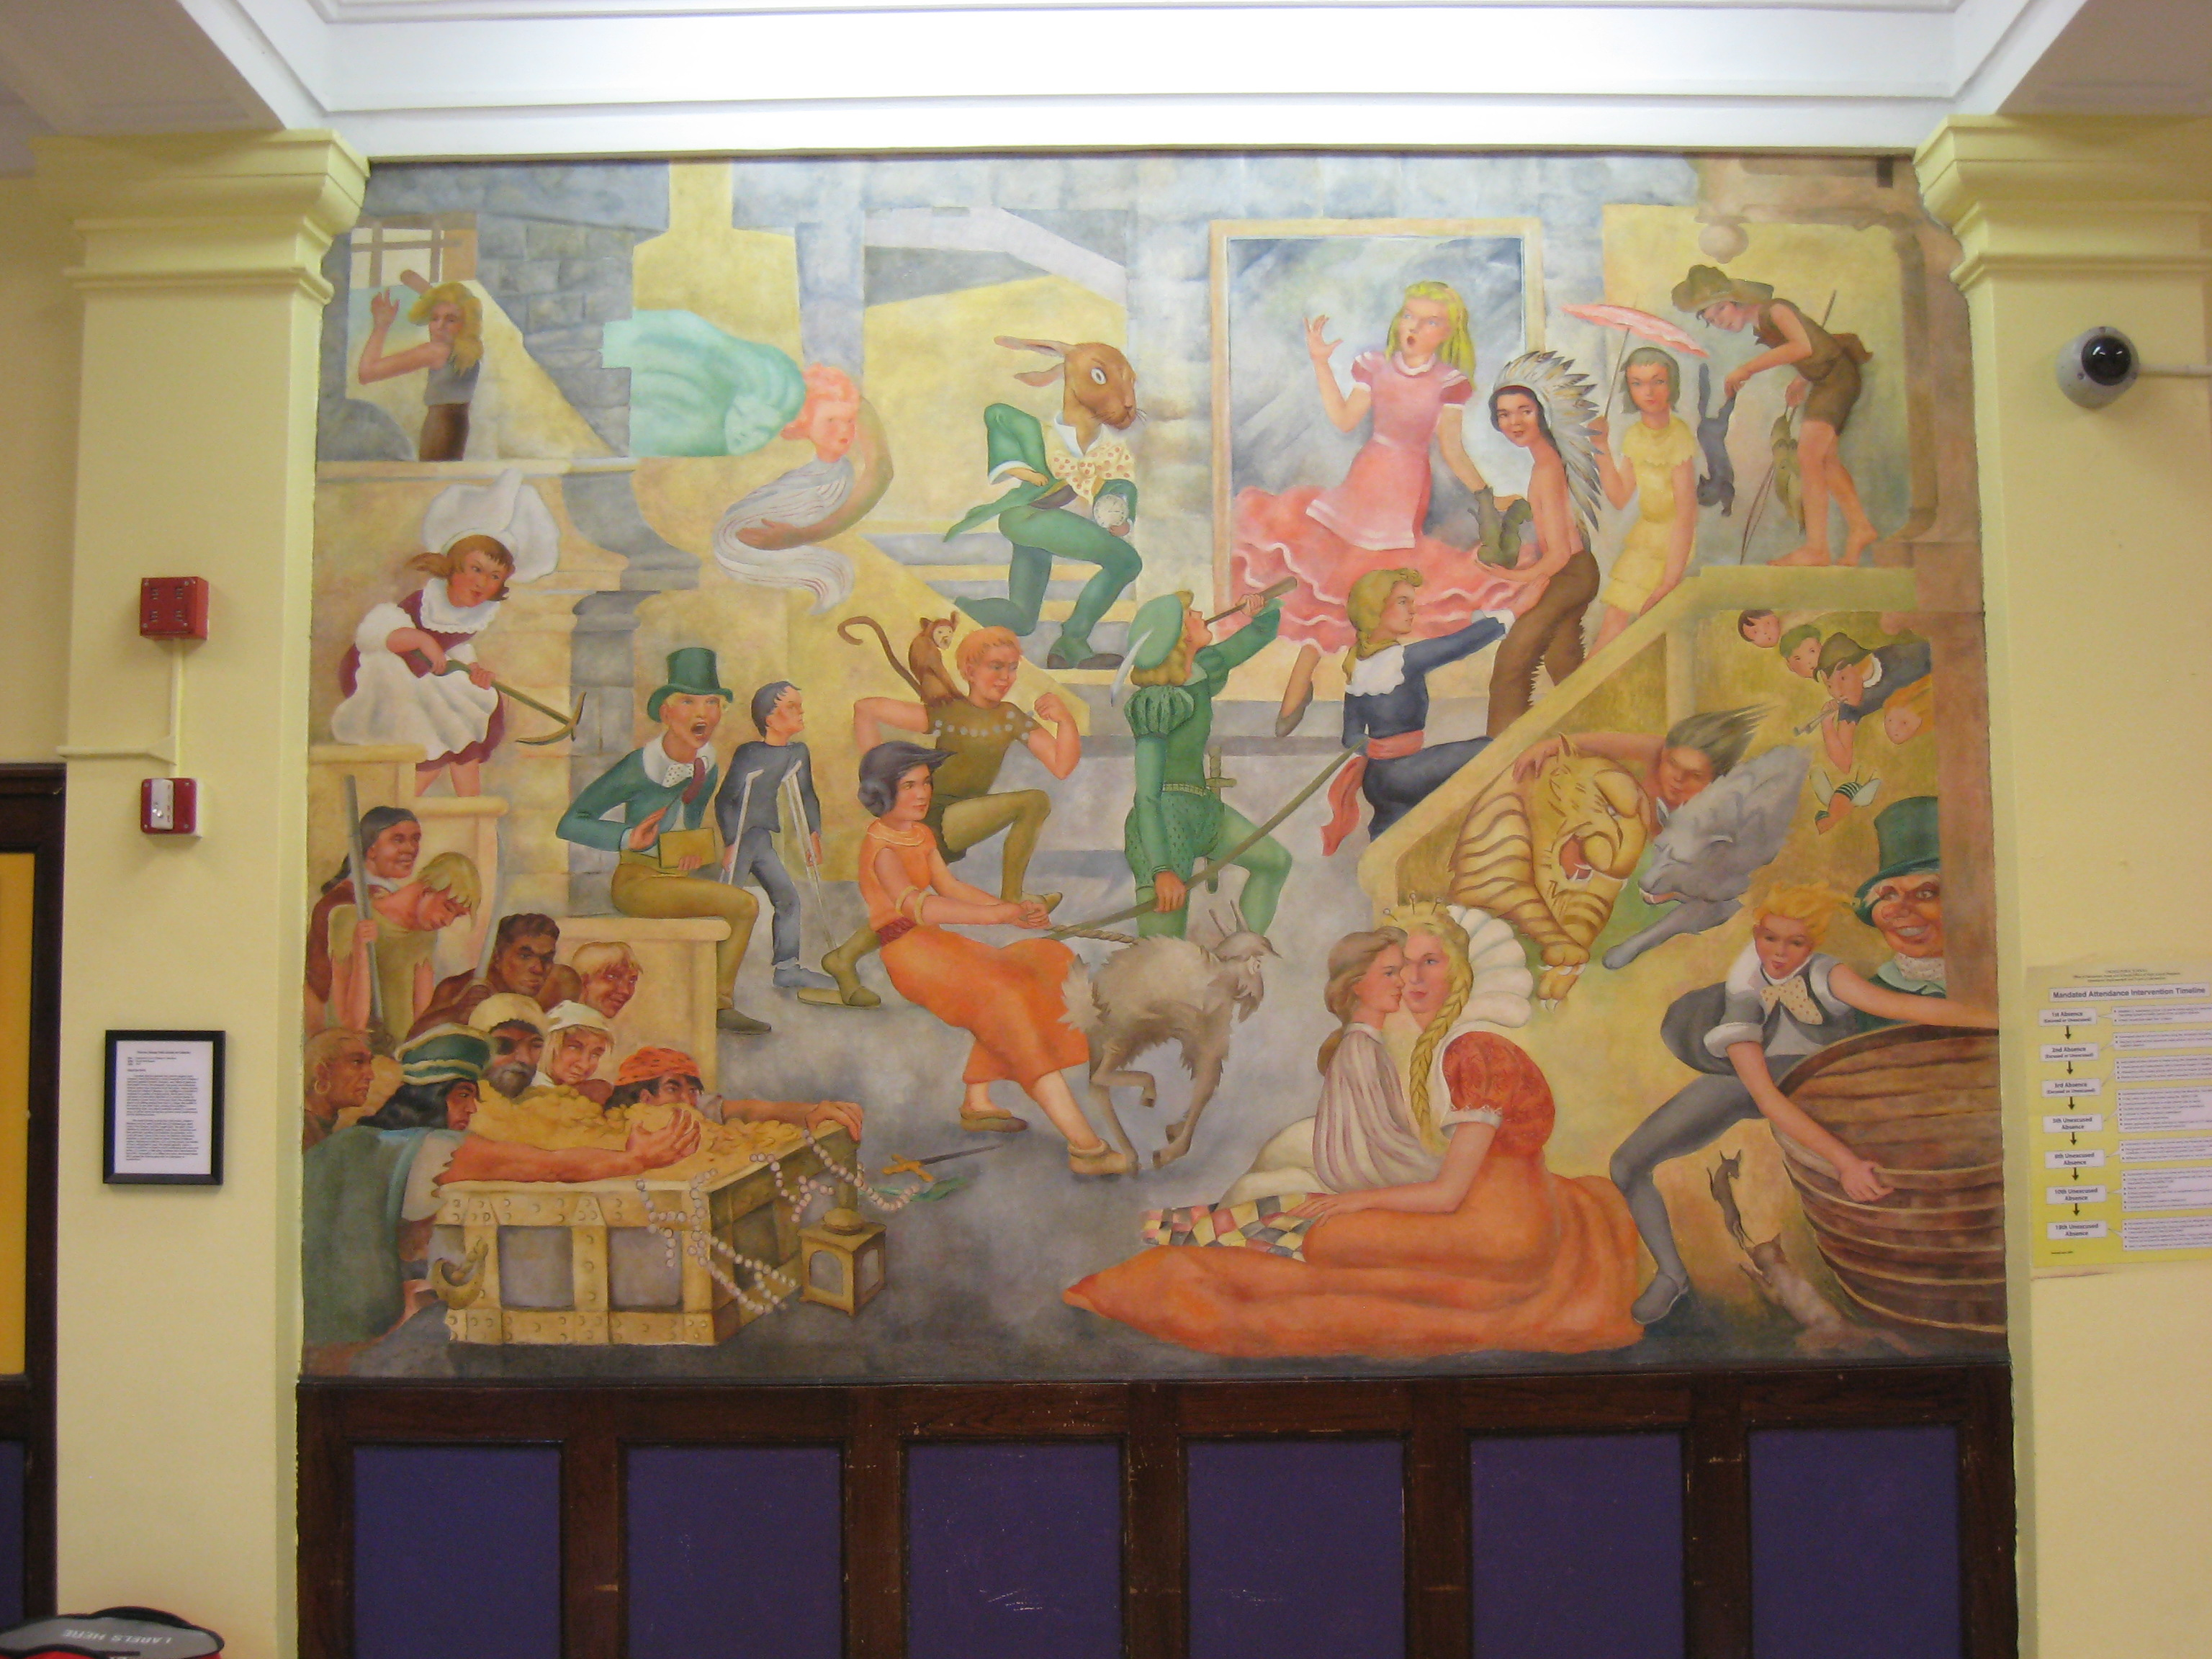 Bateman school mural chicago il living new deal for Mural in chicago illinois